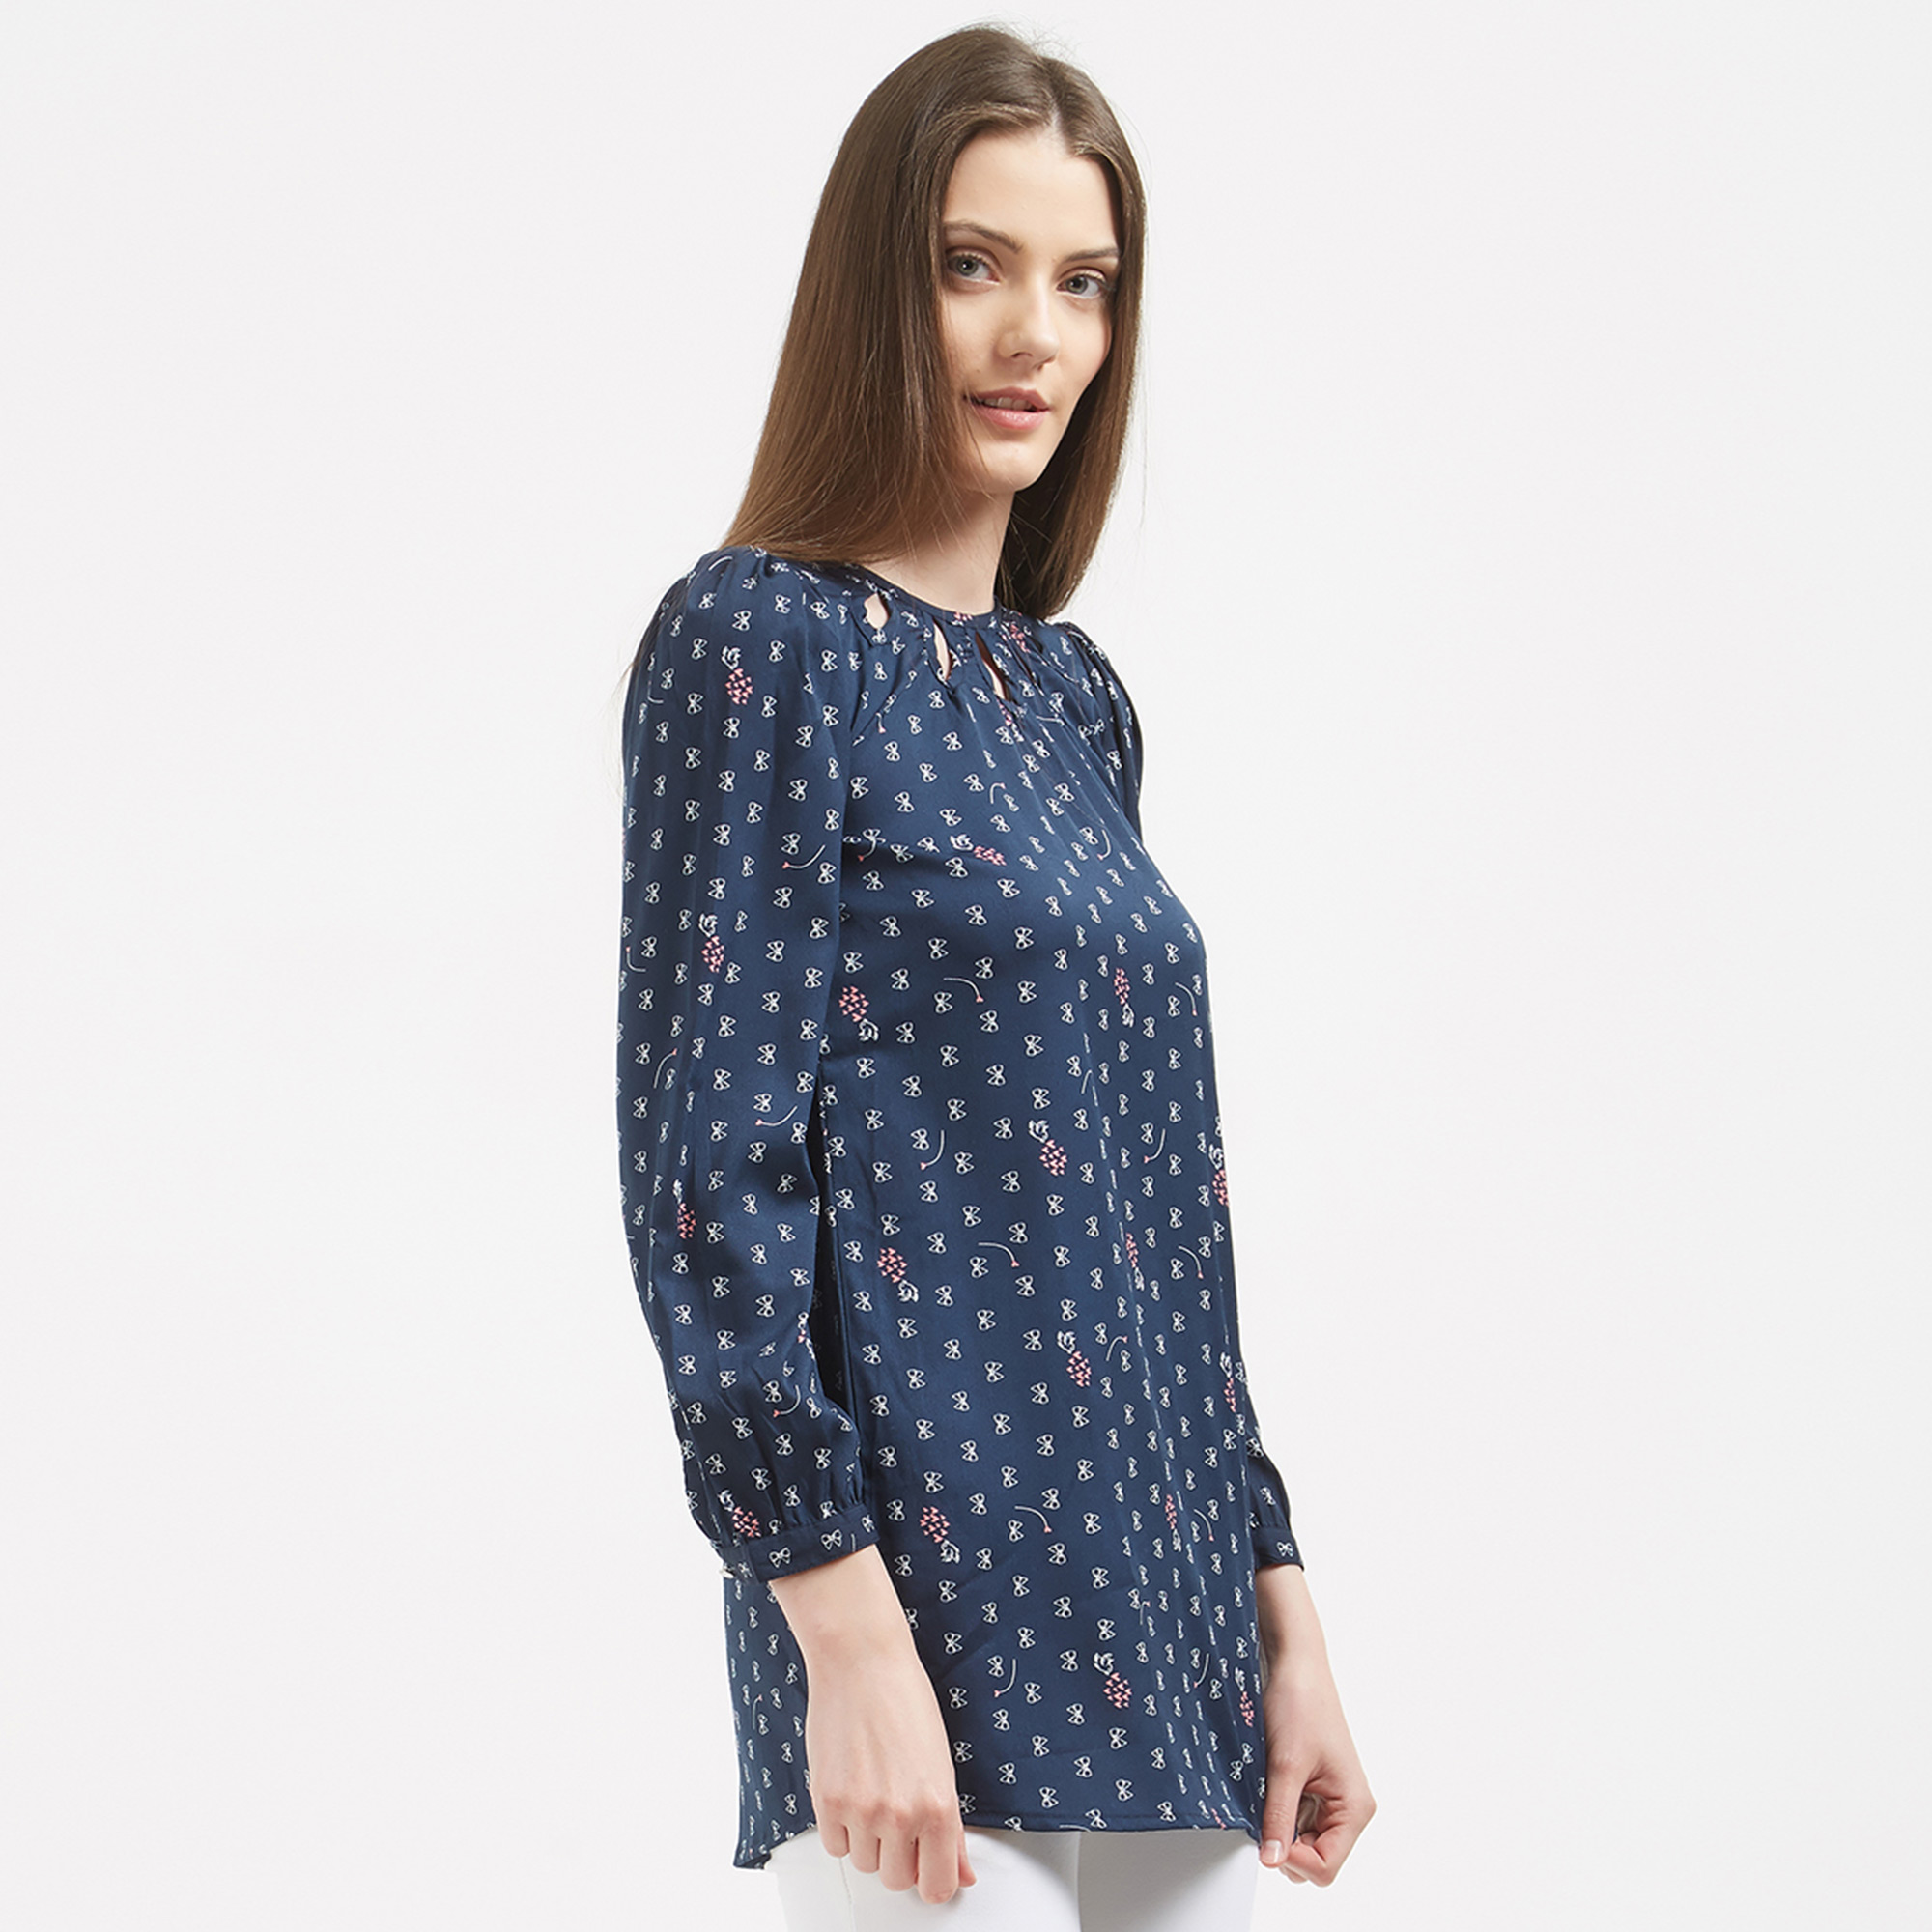 Adorning Navy Blue Colored Printed Casual Party Wear Crape Western Top